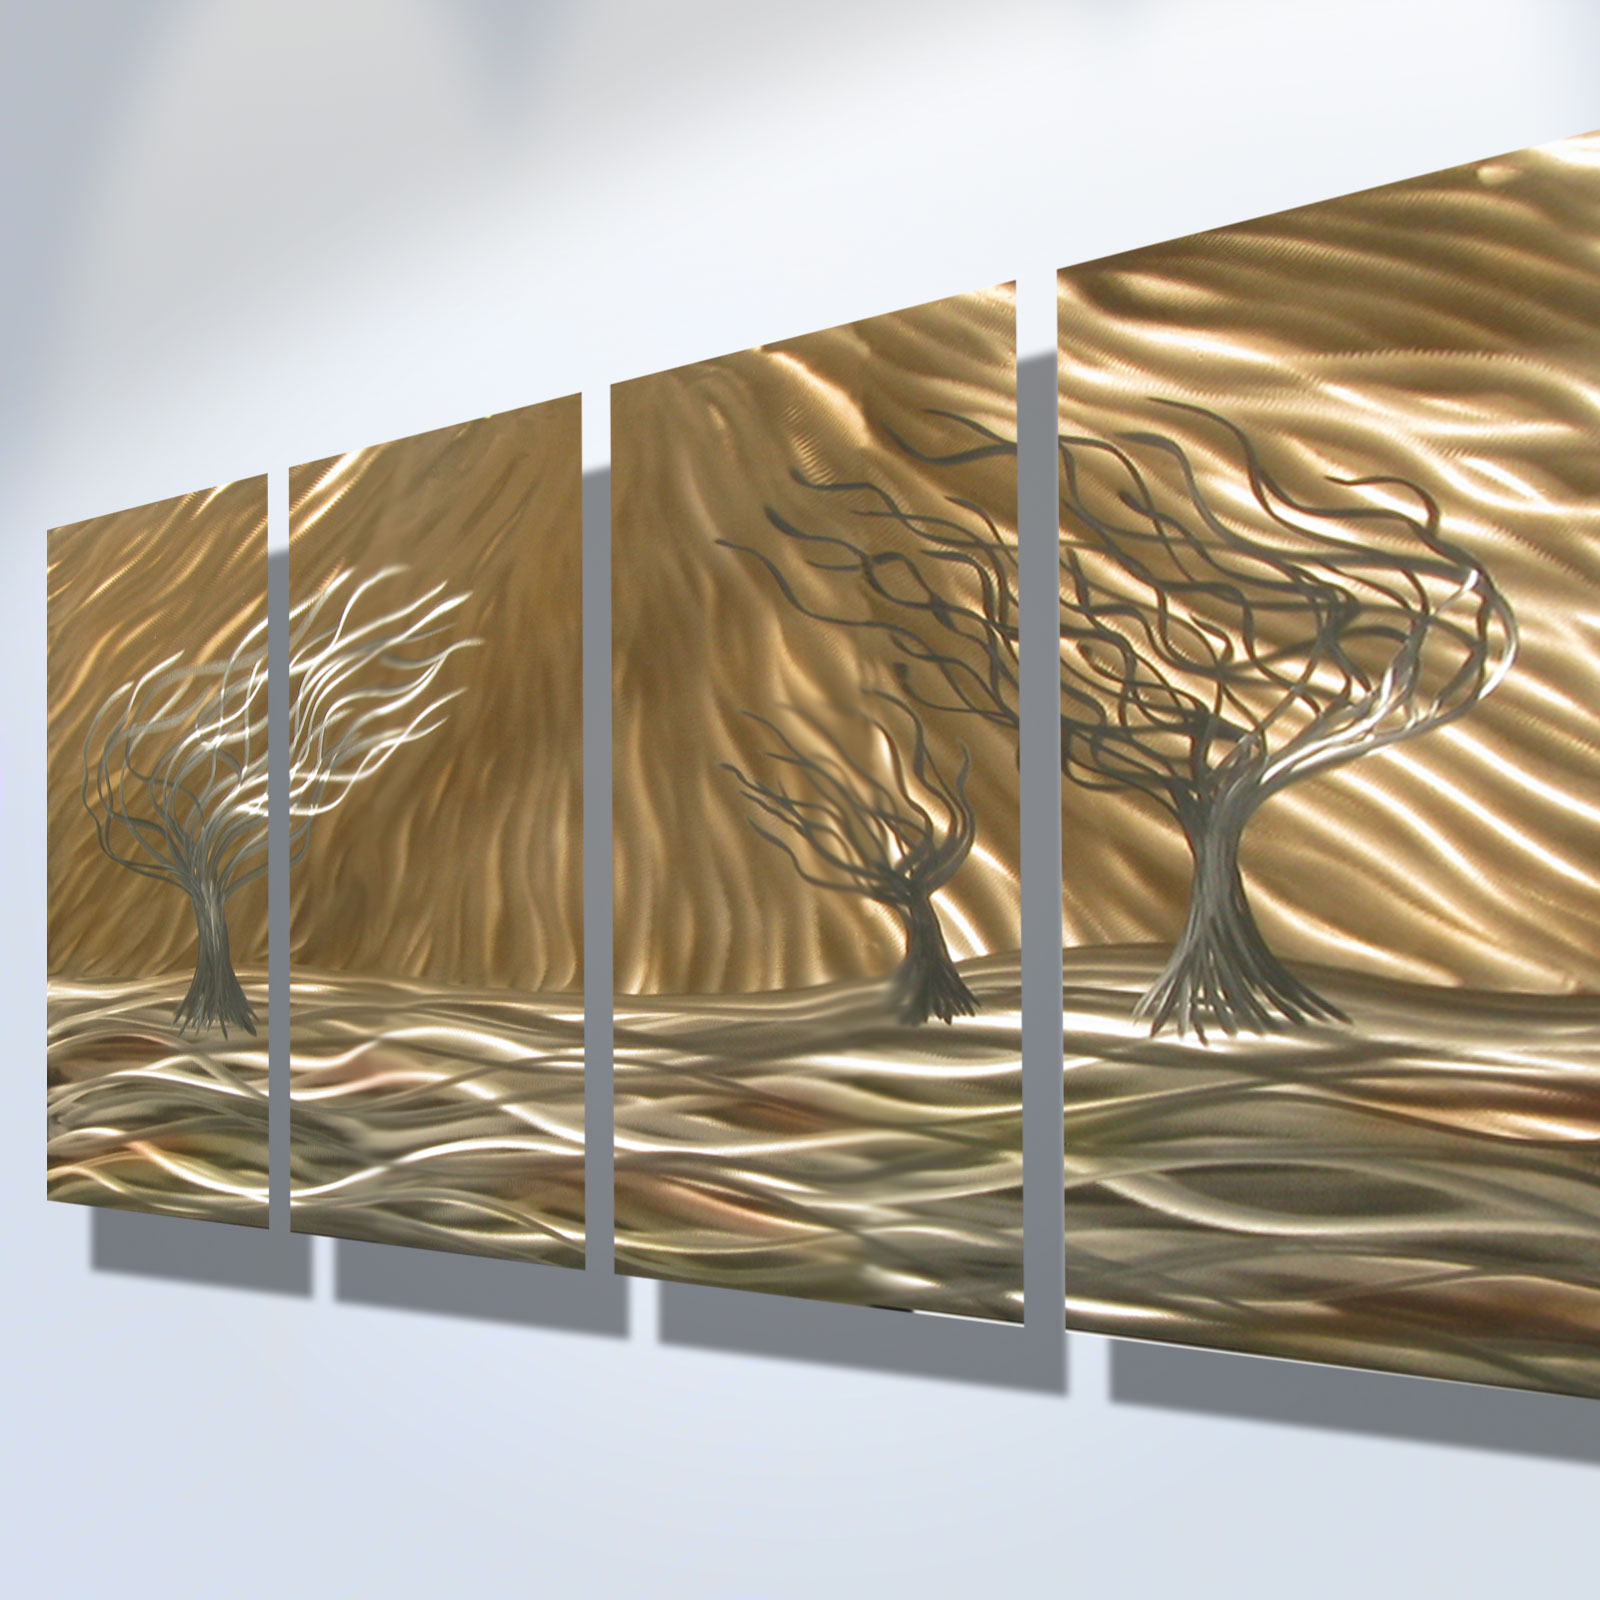 3 Trees 4 Panel   Abstract Metal Wall Art Contemporary Modern Decor    Thumbnail 1 ...